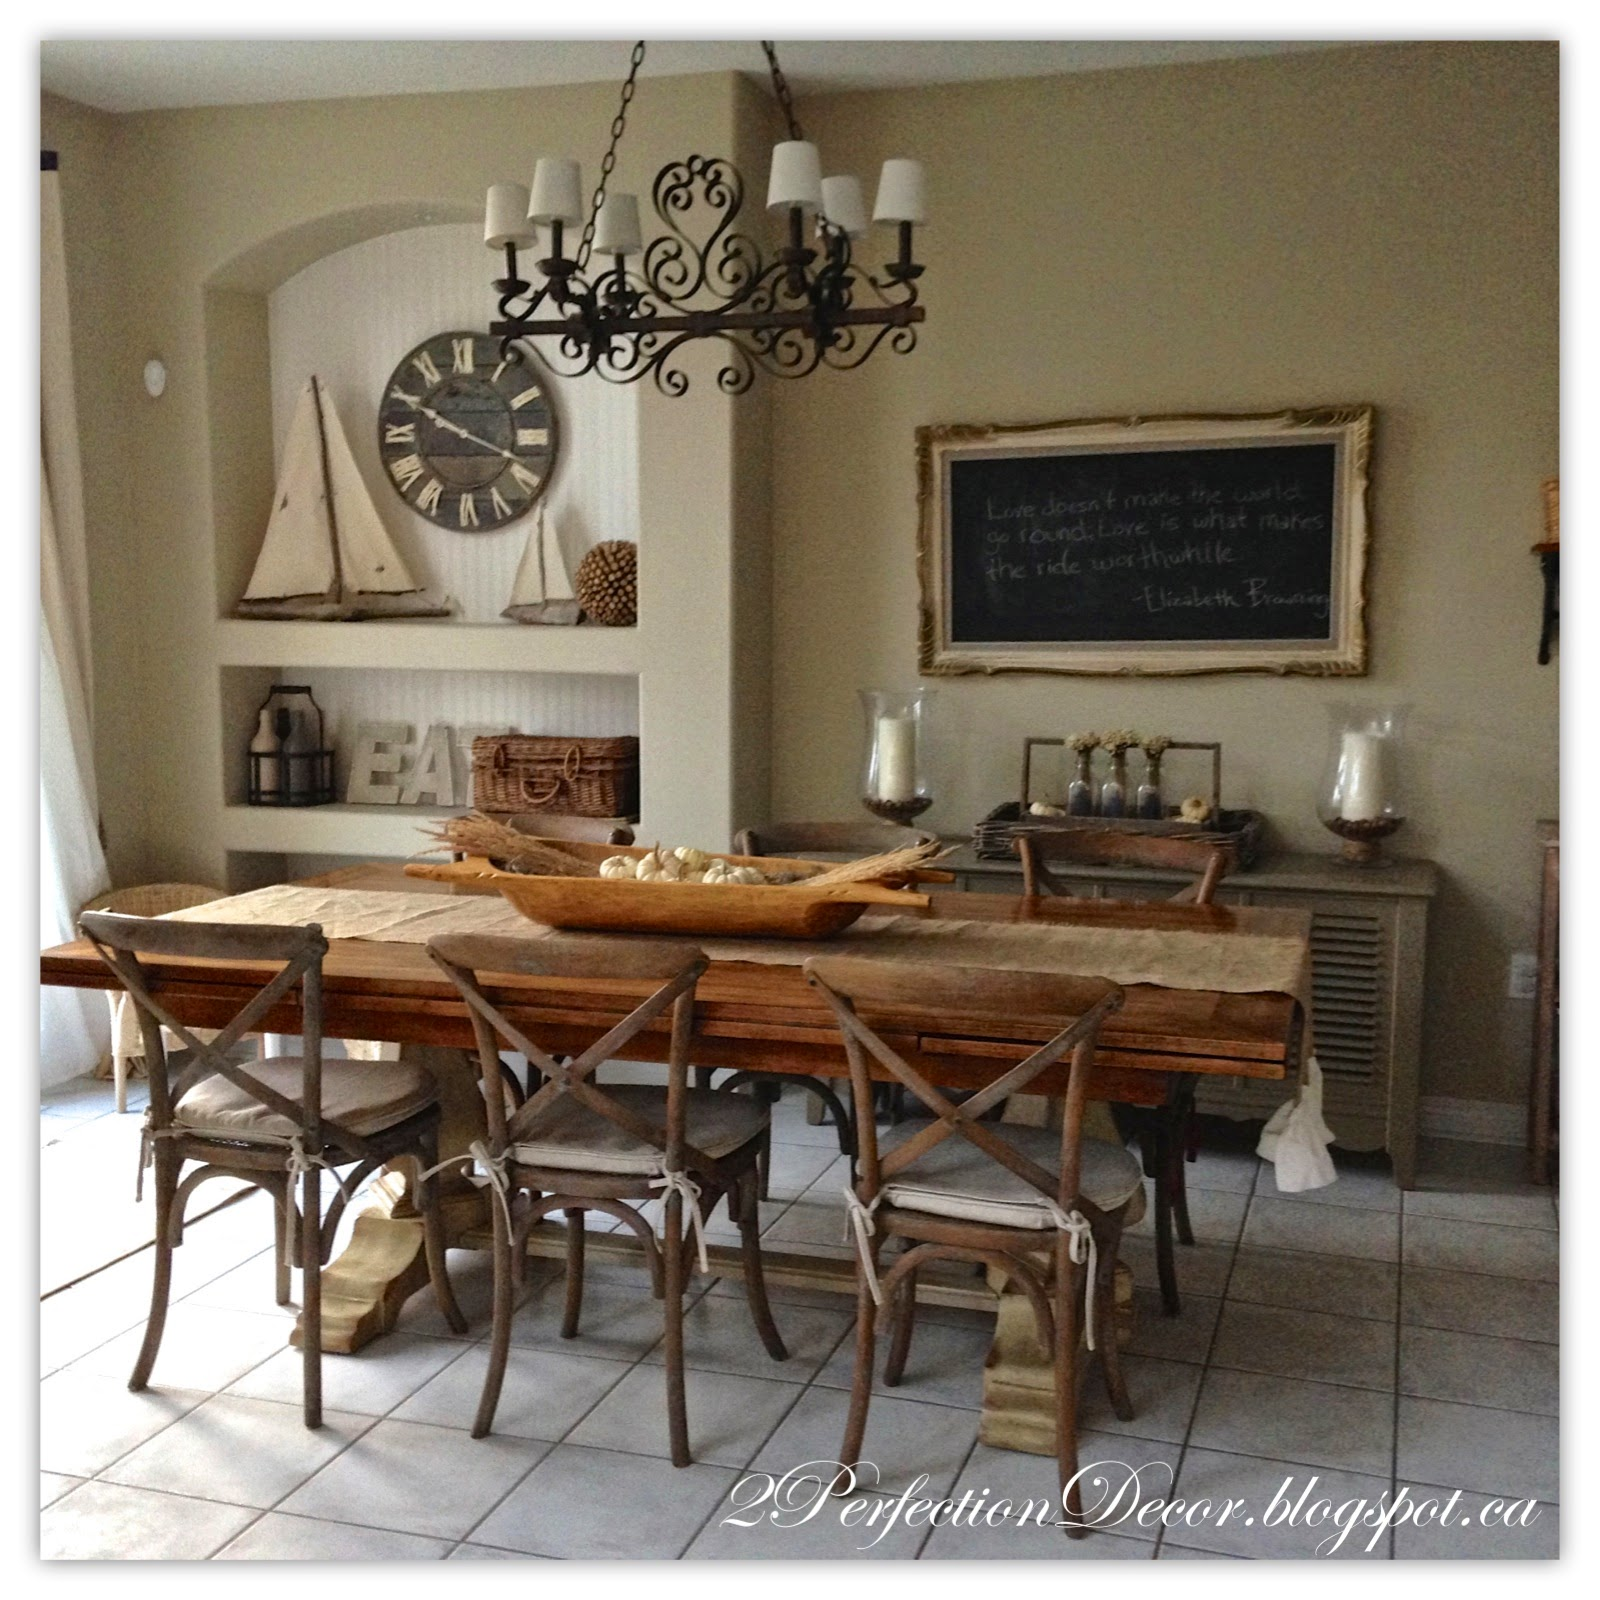 Table In Kitchen: 2Perfection Decor: Kitchen Eating Area Reveal